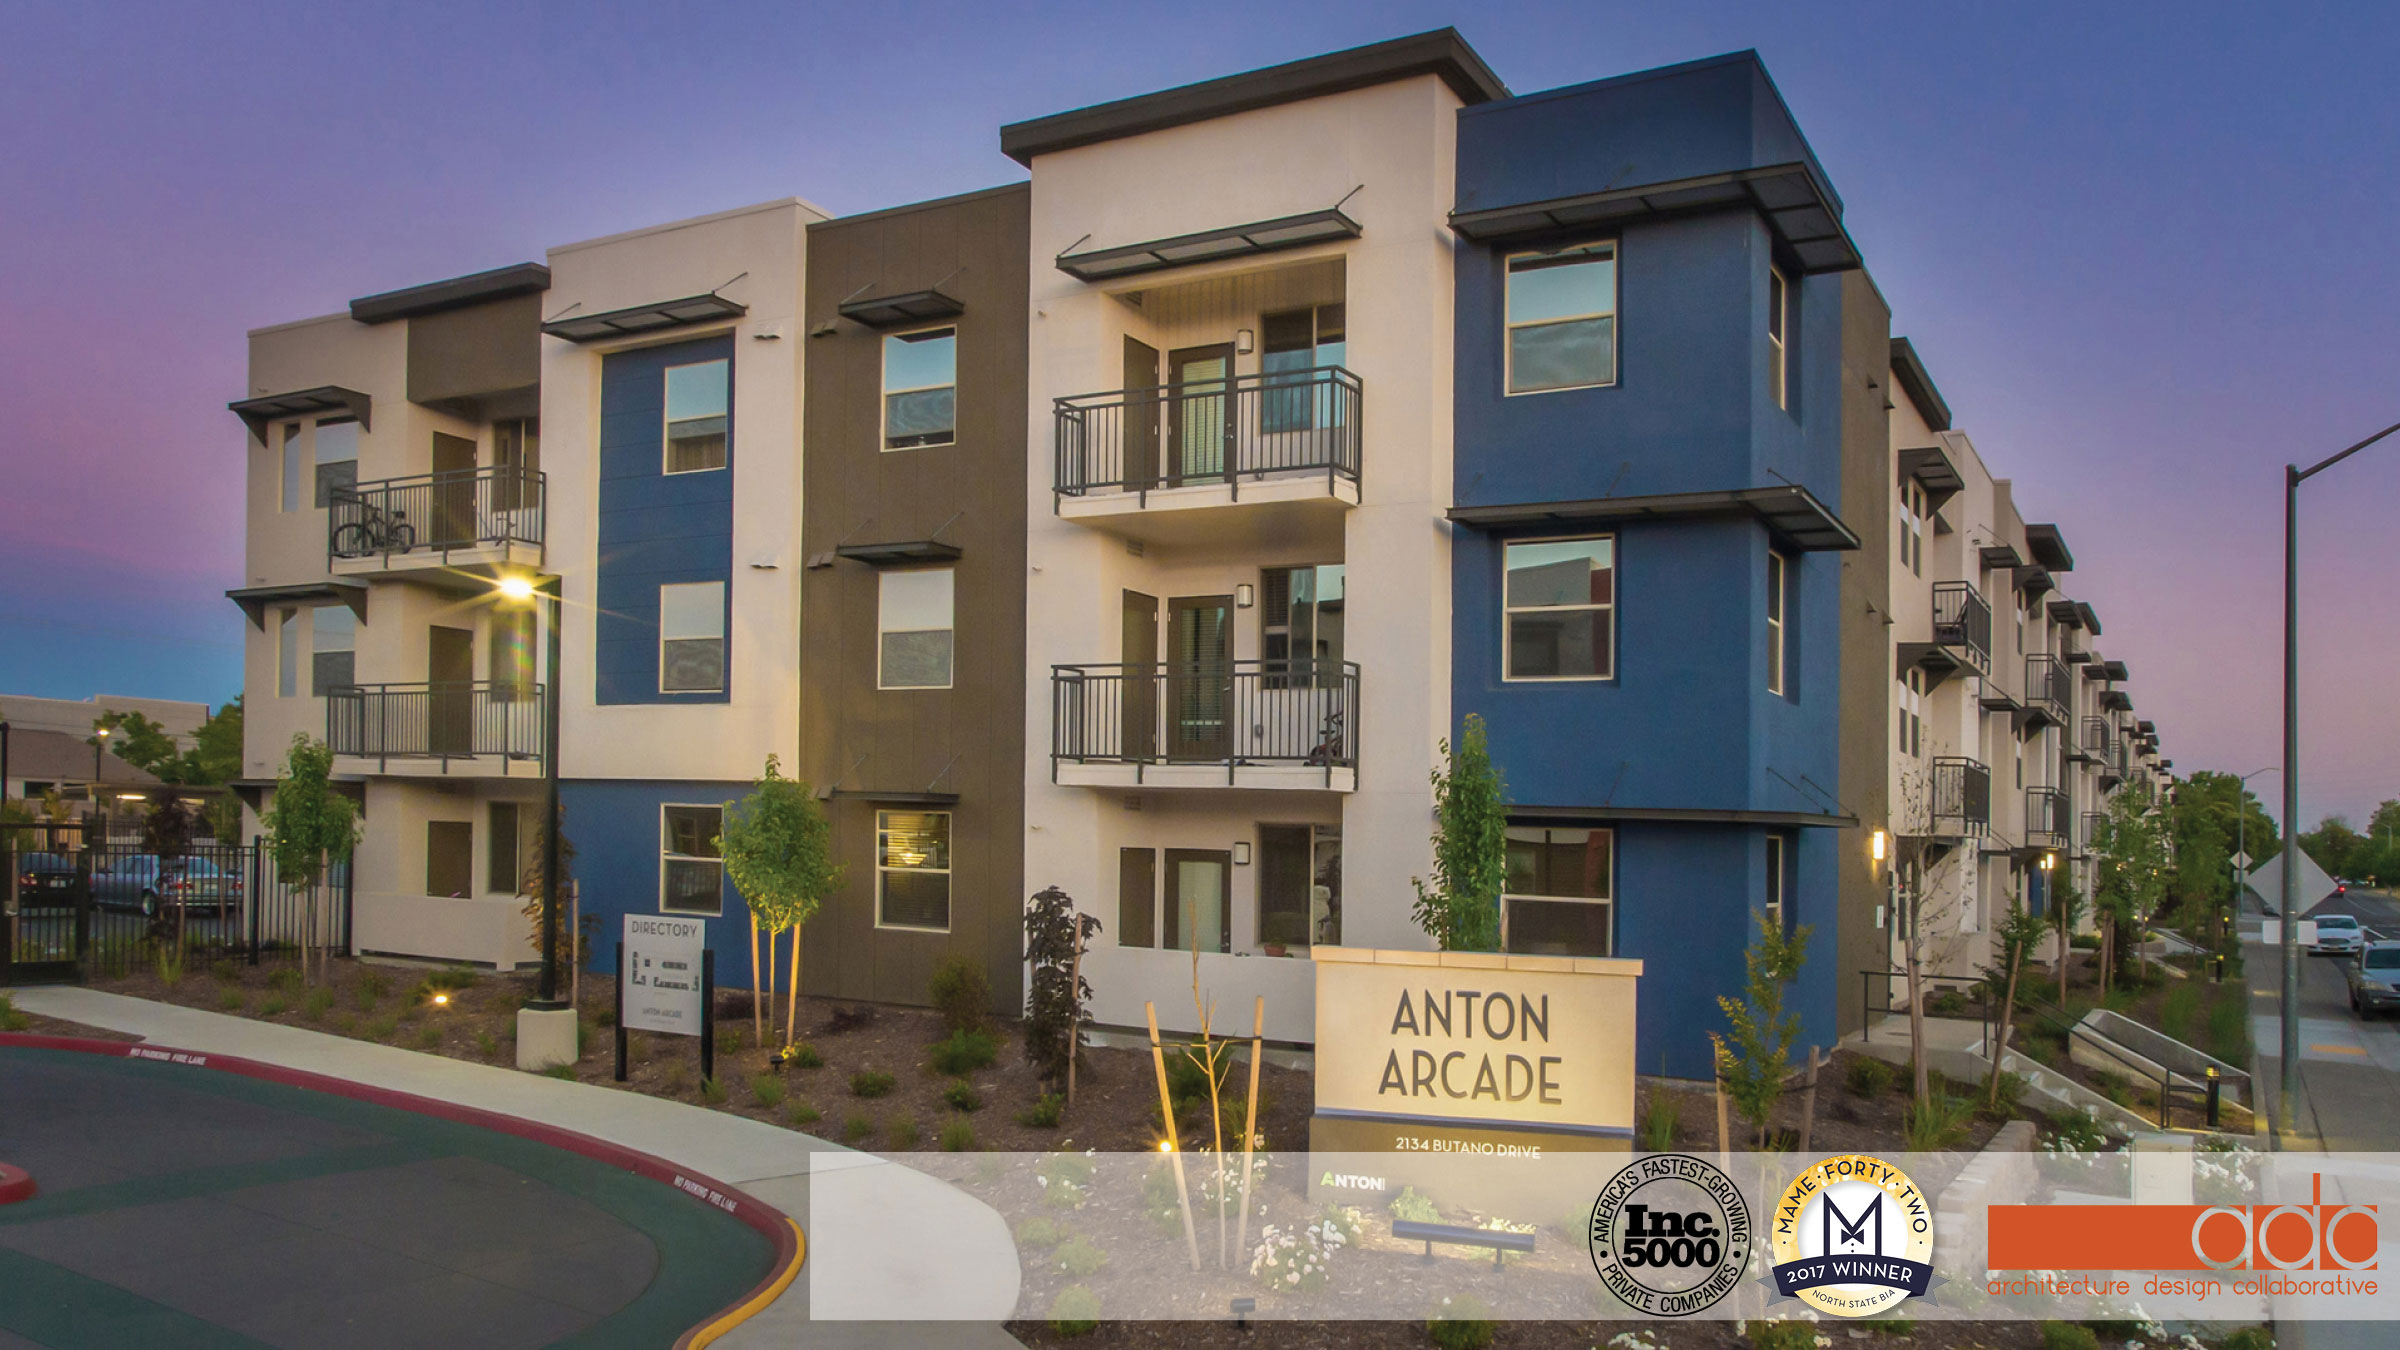 This is a medium density, affordable housing apartment project located in Sacramento, California. The project consists of multiple three-story apartment buildings with tuck under garages, a single-story community building with a business center, training space, tot lot and a pool and spa.